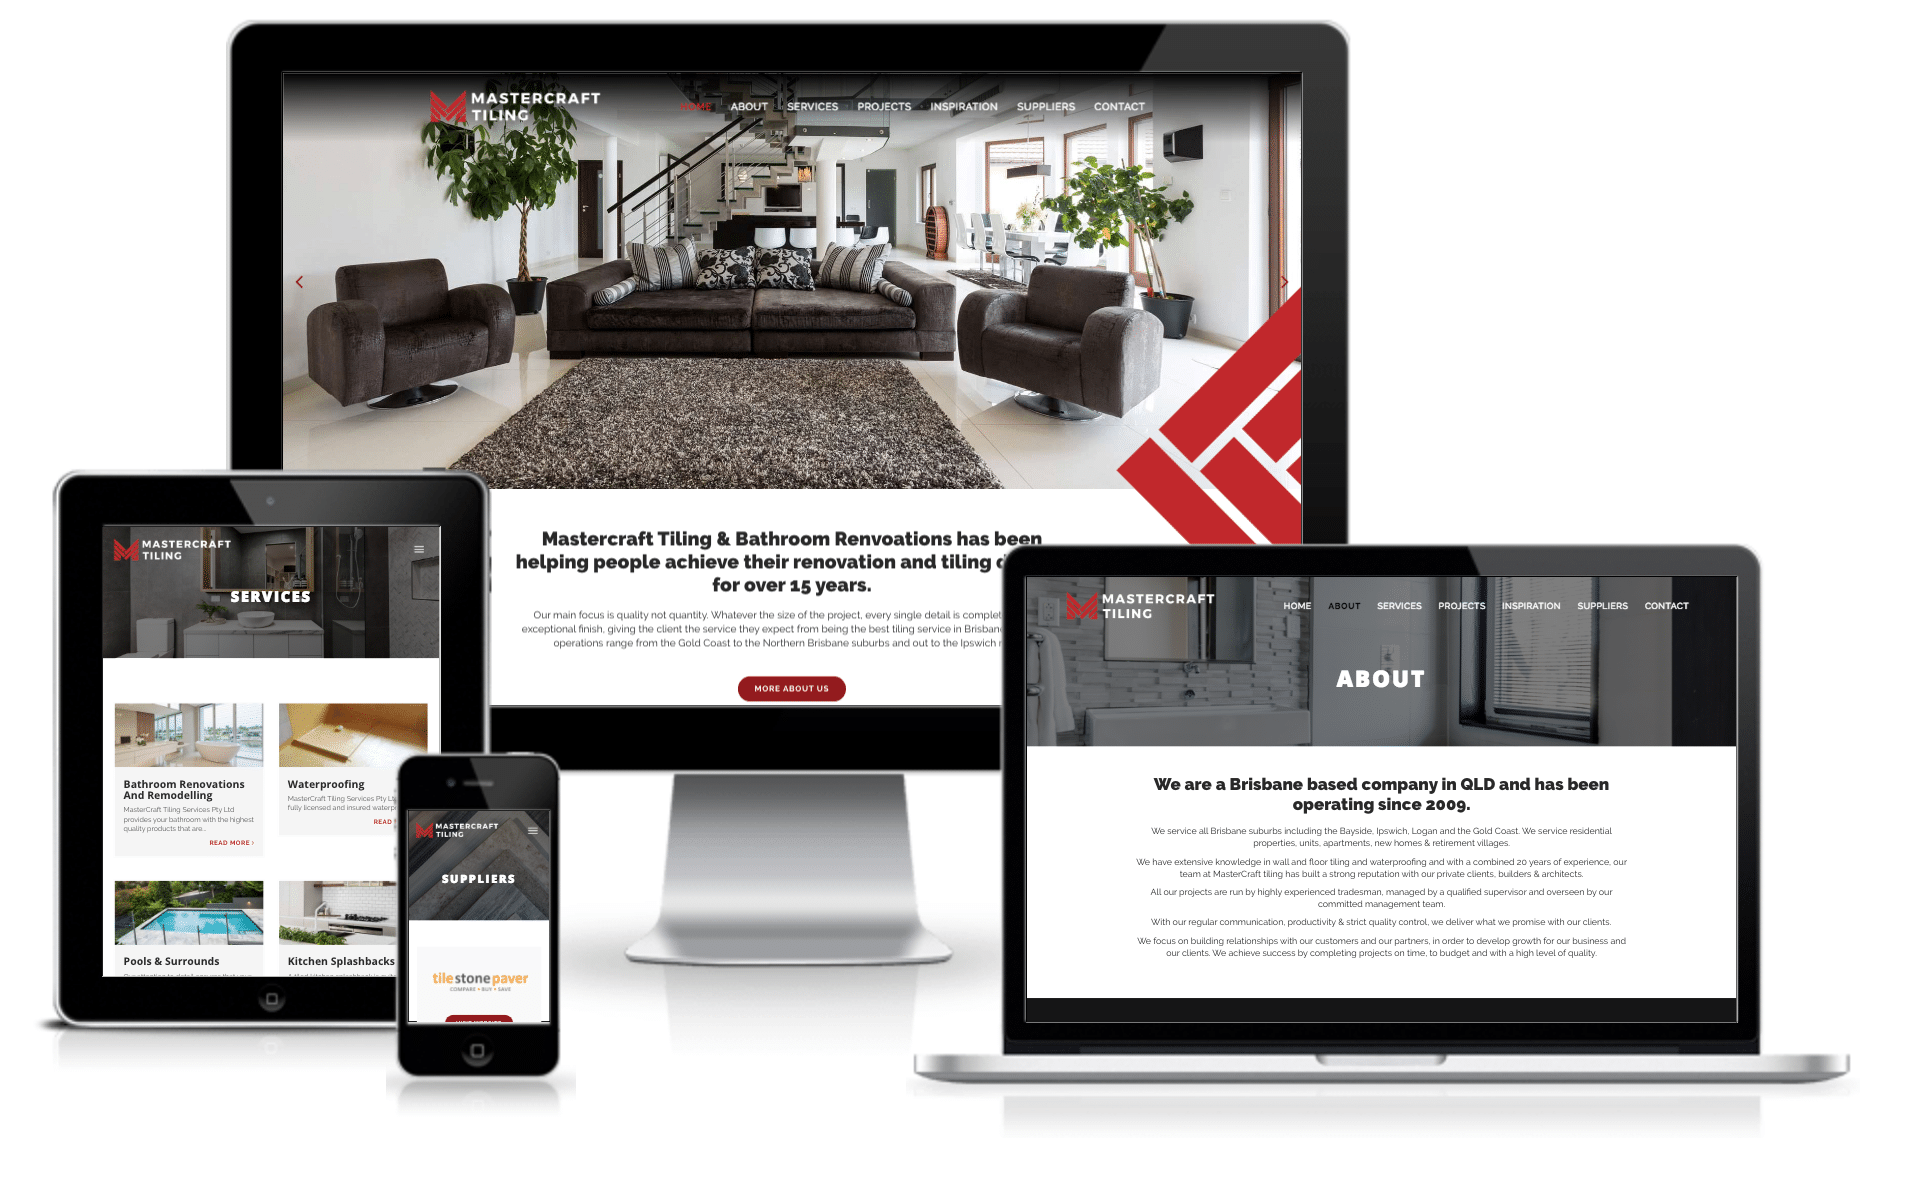 New Website and Branding: Mastercraft Tiling